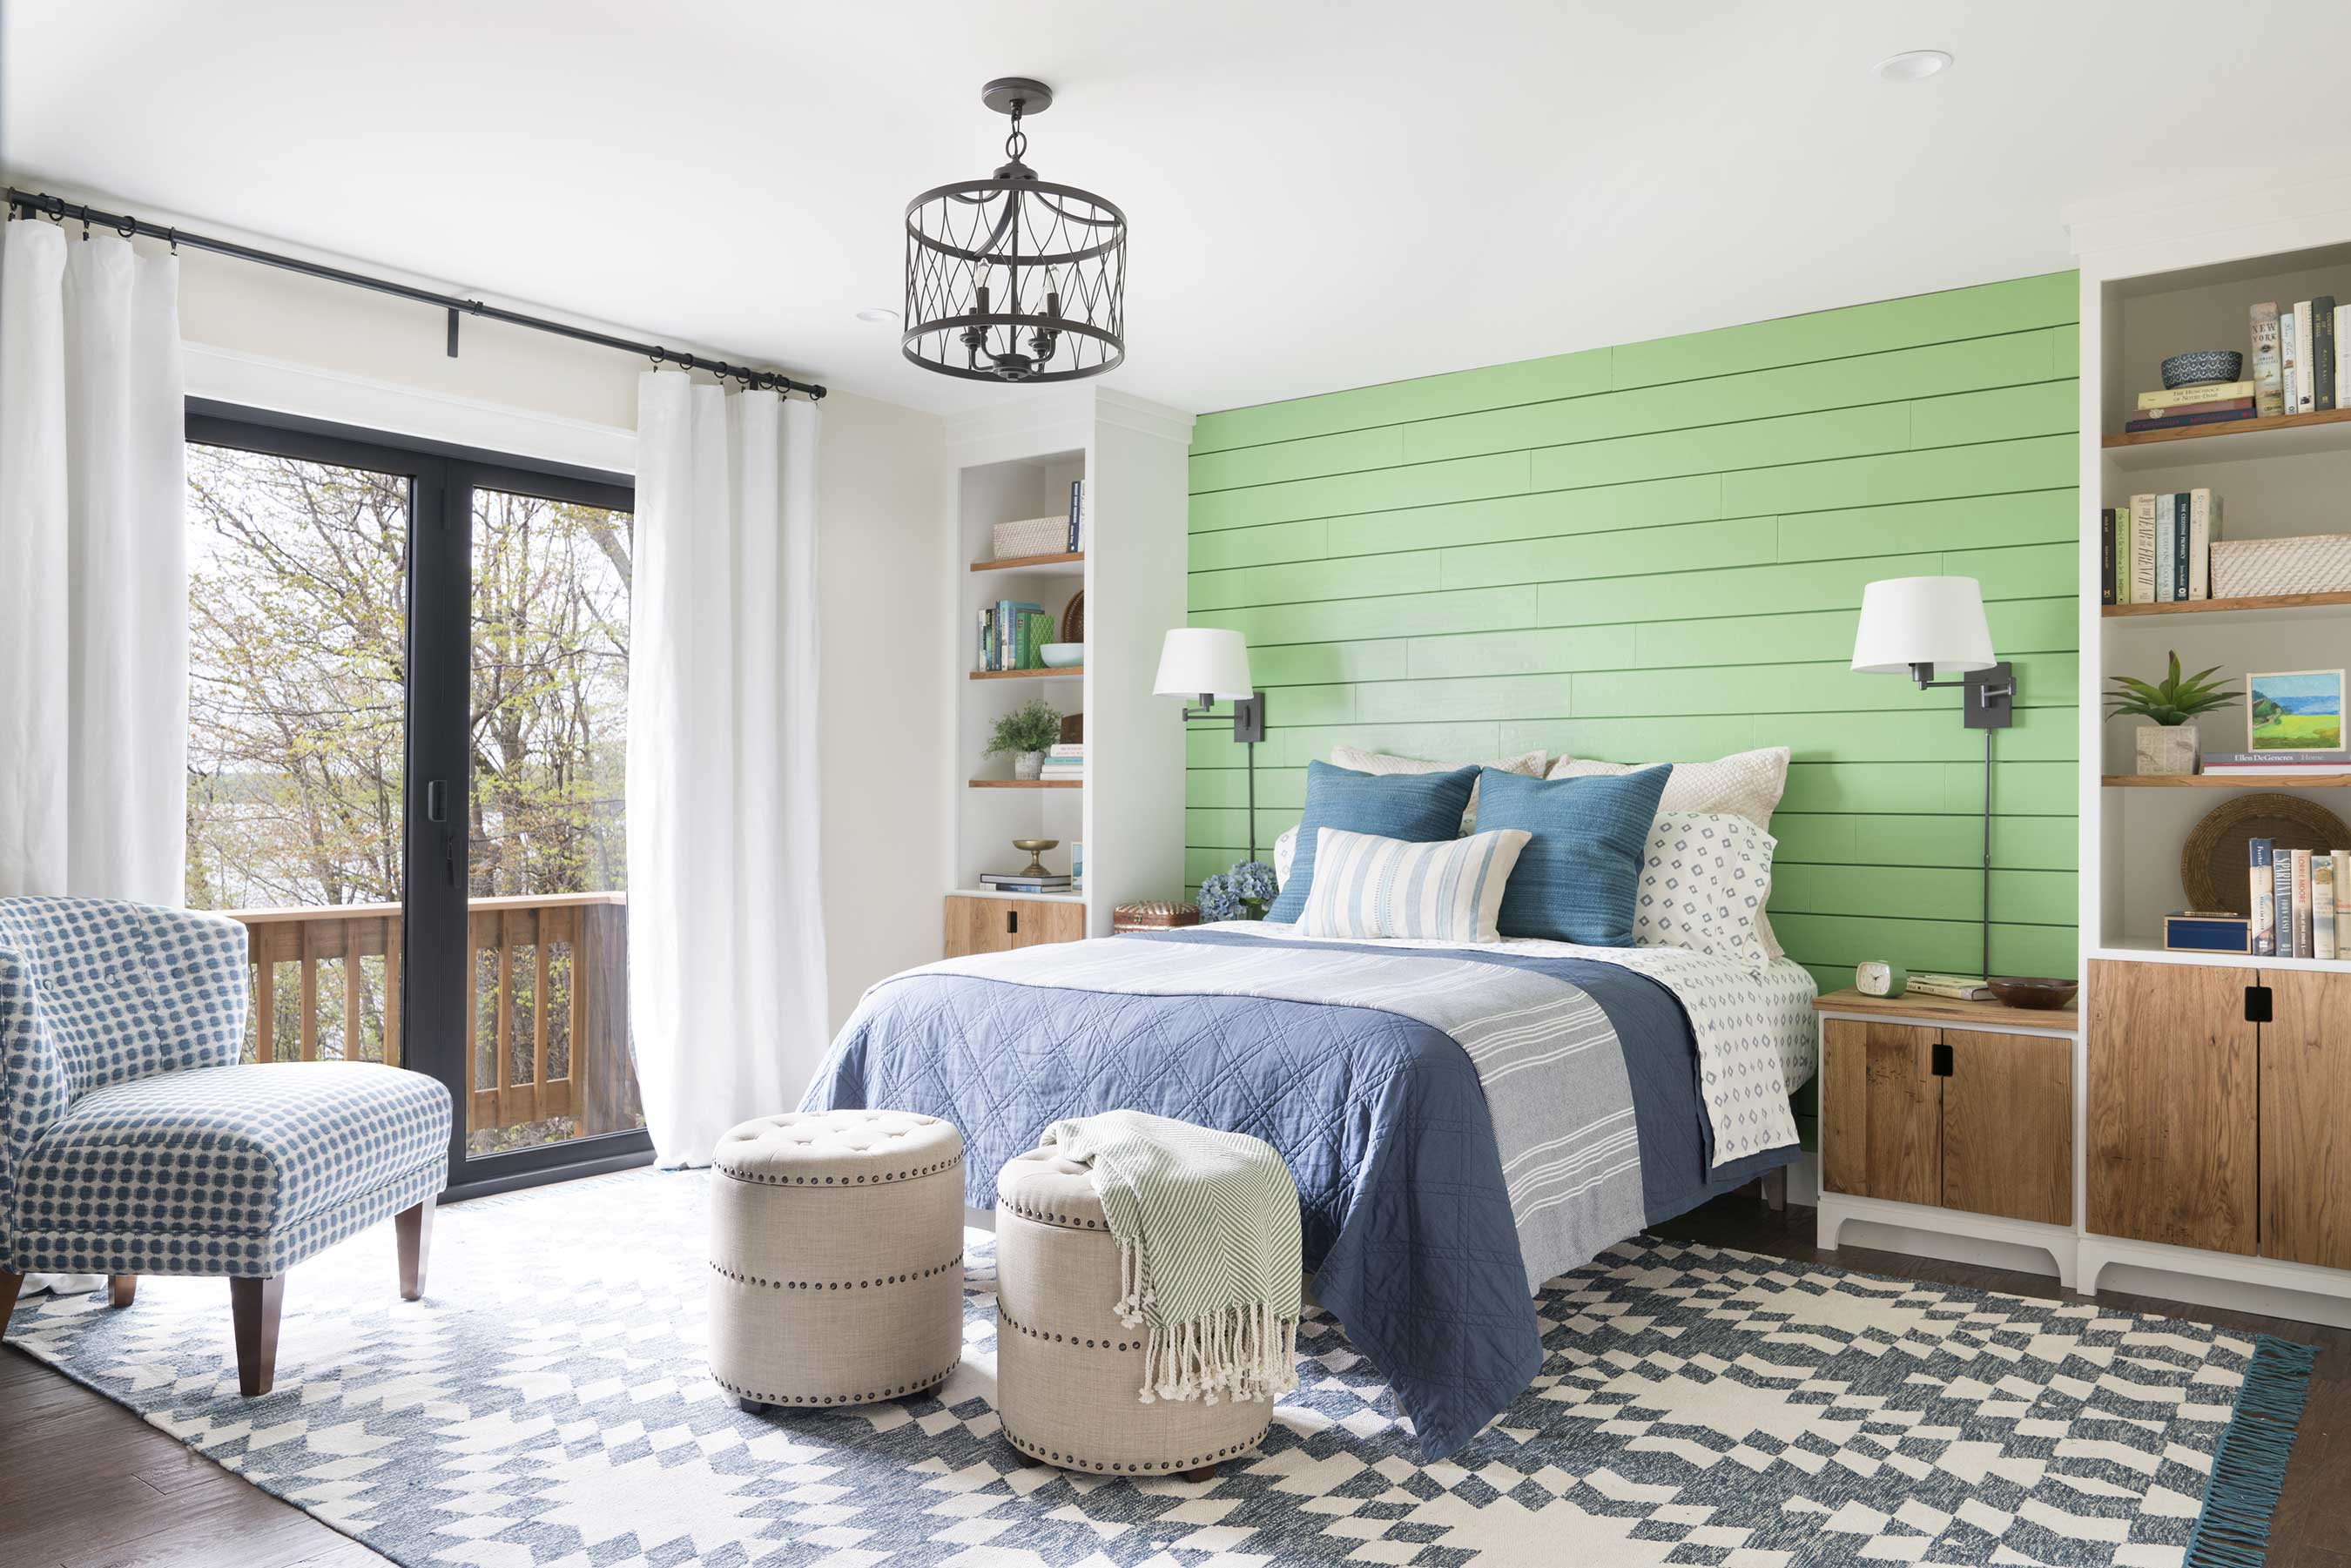 The master bedroom in the DIY Network Ultimate Retreat 2017 is a comfortable retreat to welcome you at the end of the day. A green shiplap feature wall is flanked by custom nightstands and bookshelves, and soft bedding with hues of blue rounds out a color palette inspired by the outdoors. Folding glass doors allow easy access to the main deck and take full advantage of an incredible lake view.